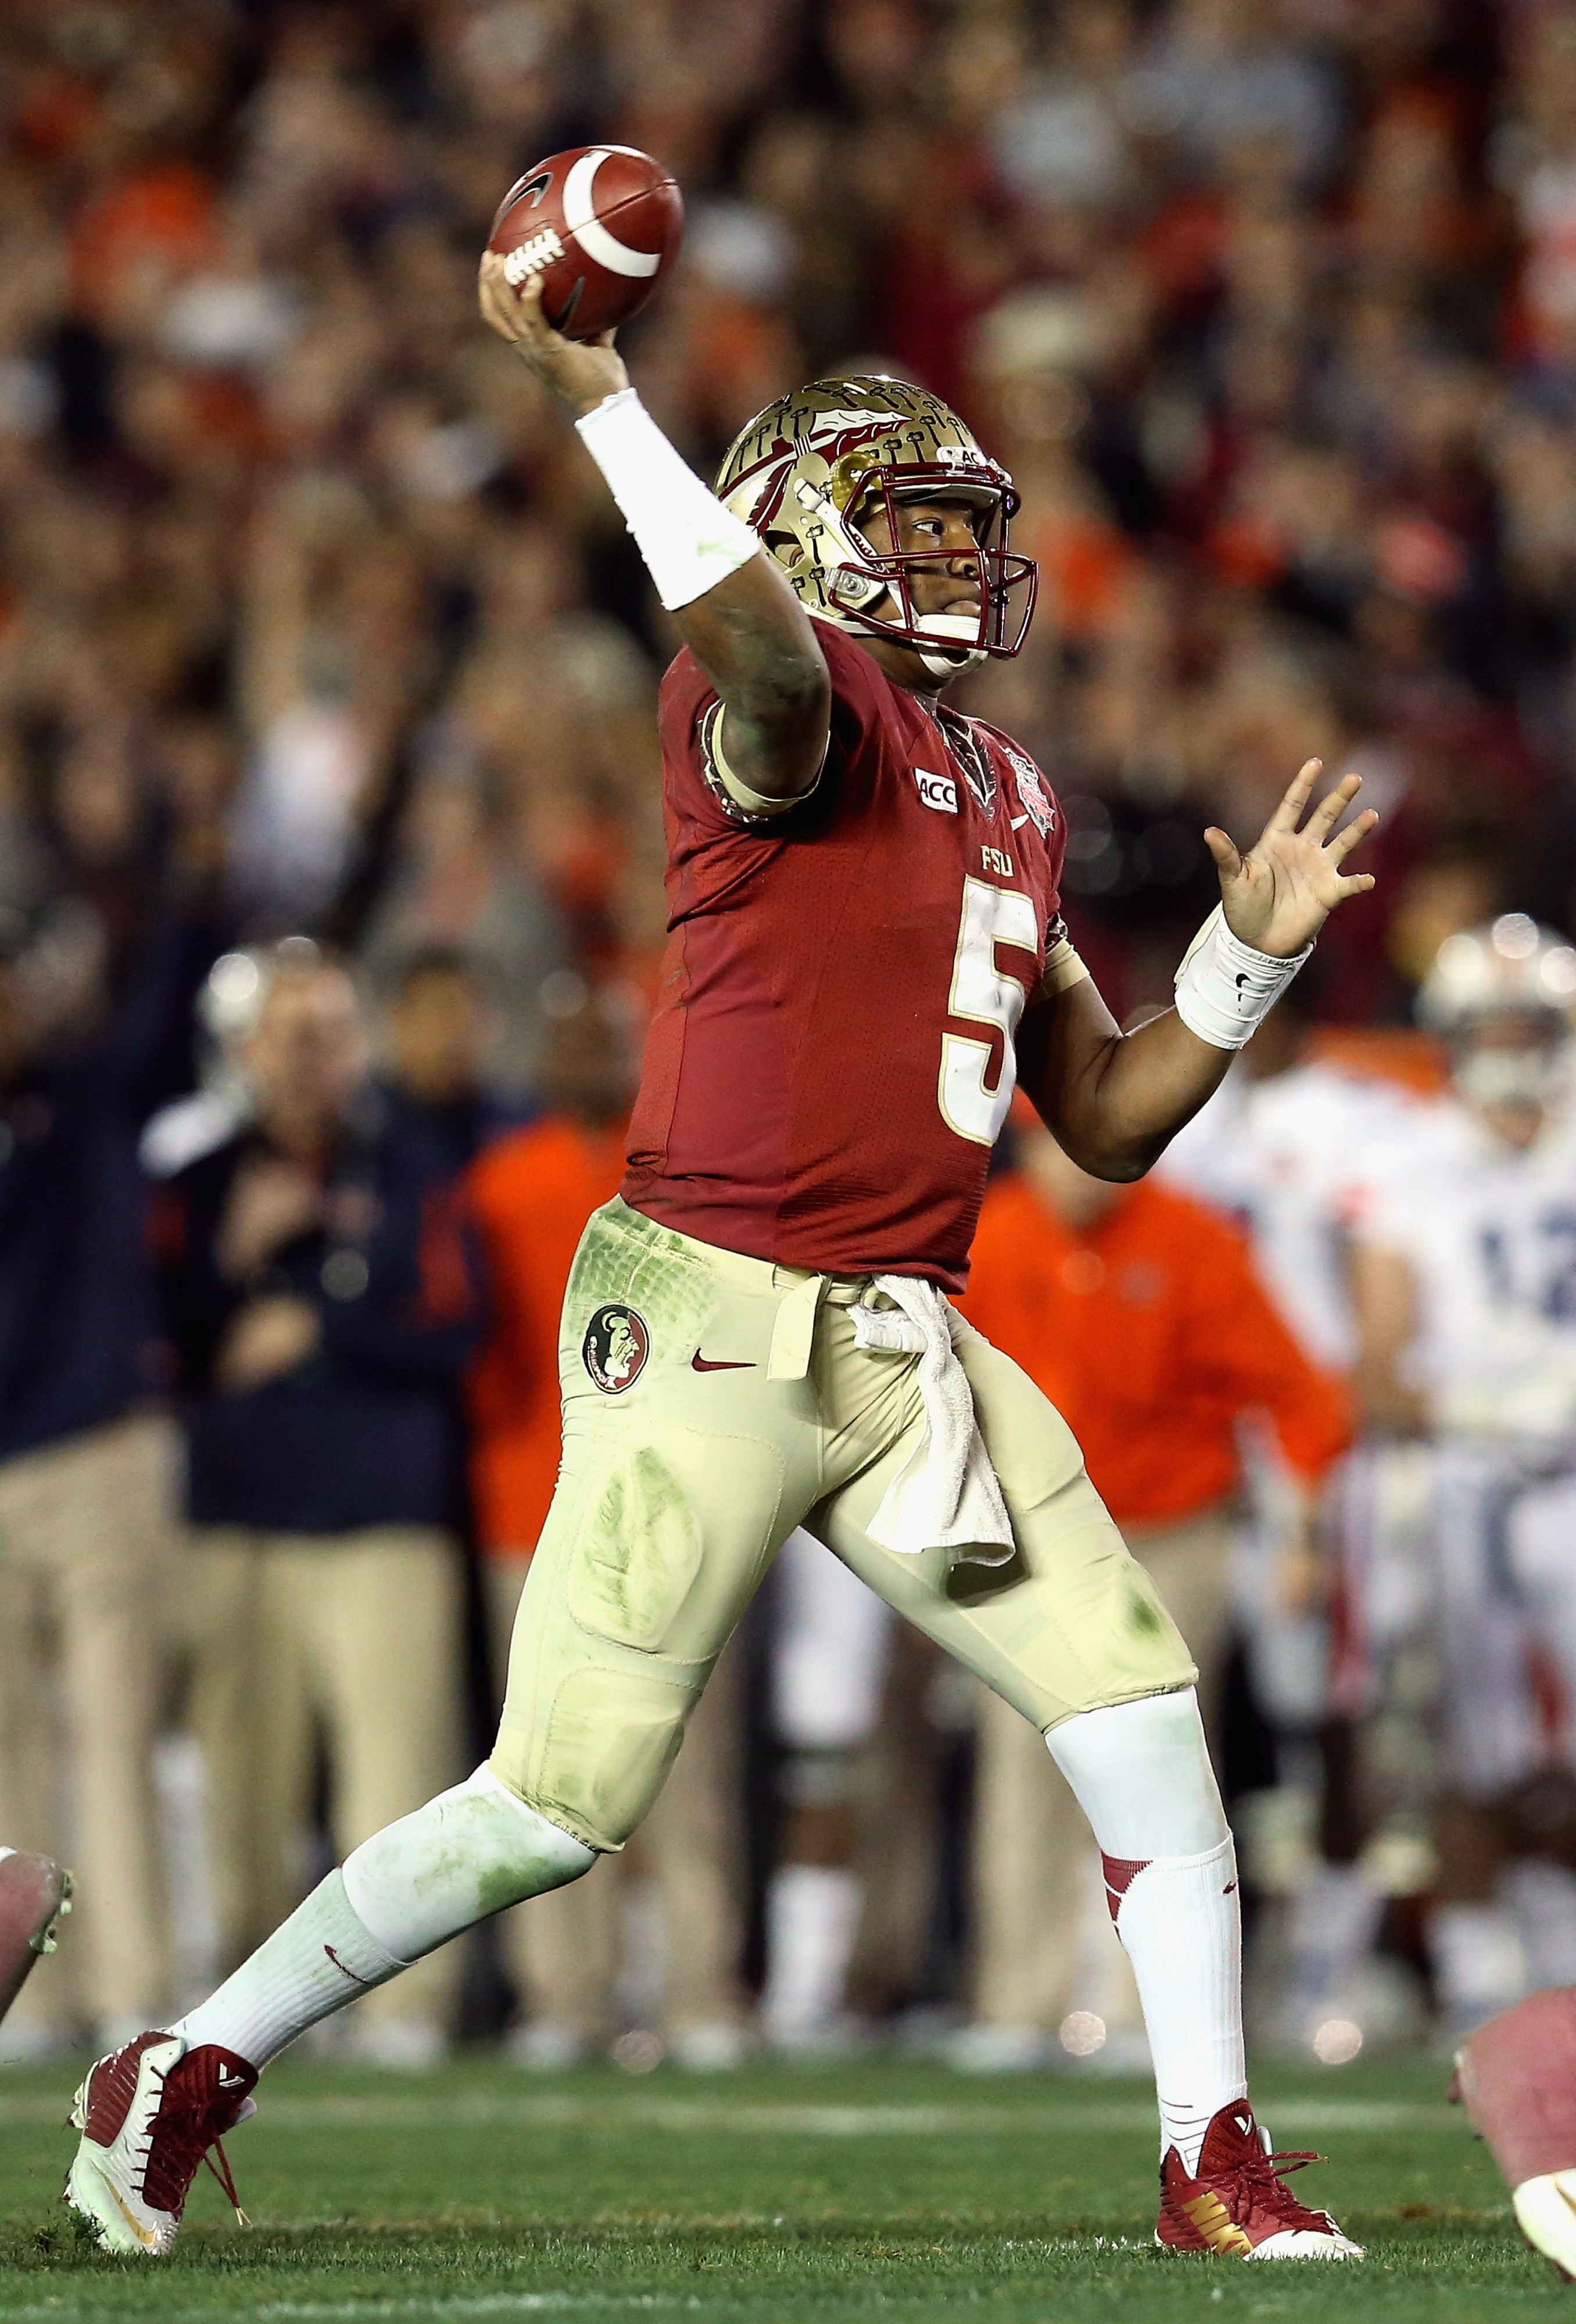 2015 NFL Draft: Florida State's Jameis Winston paces ACC prospects